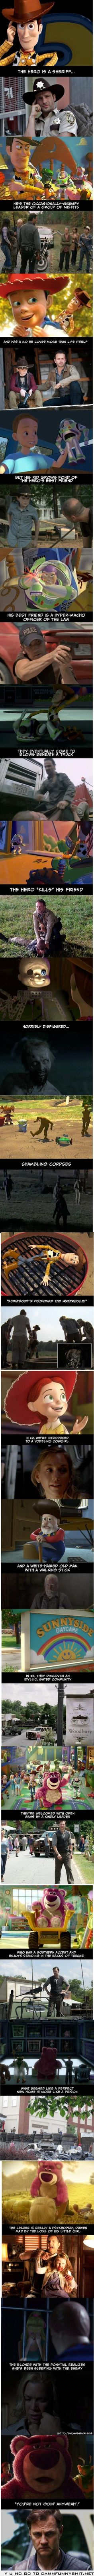 Wowt. The Walking Dead is basically Toy Story. And by basically I mean the exact same thing. Lol #mindblown